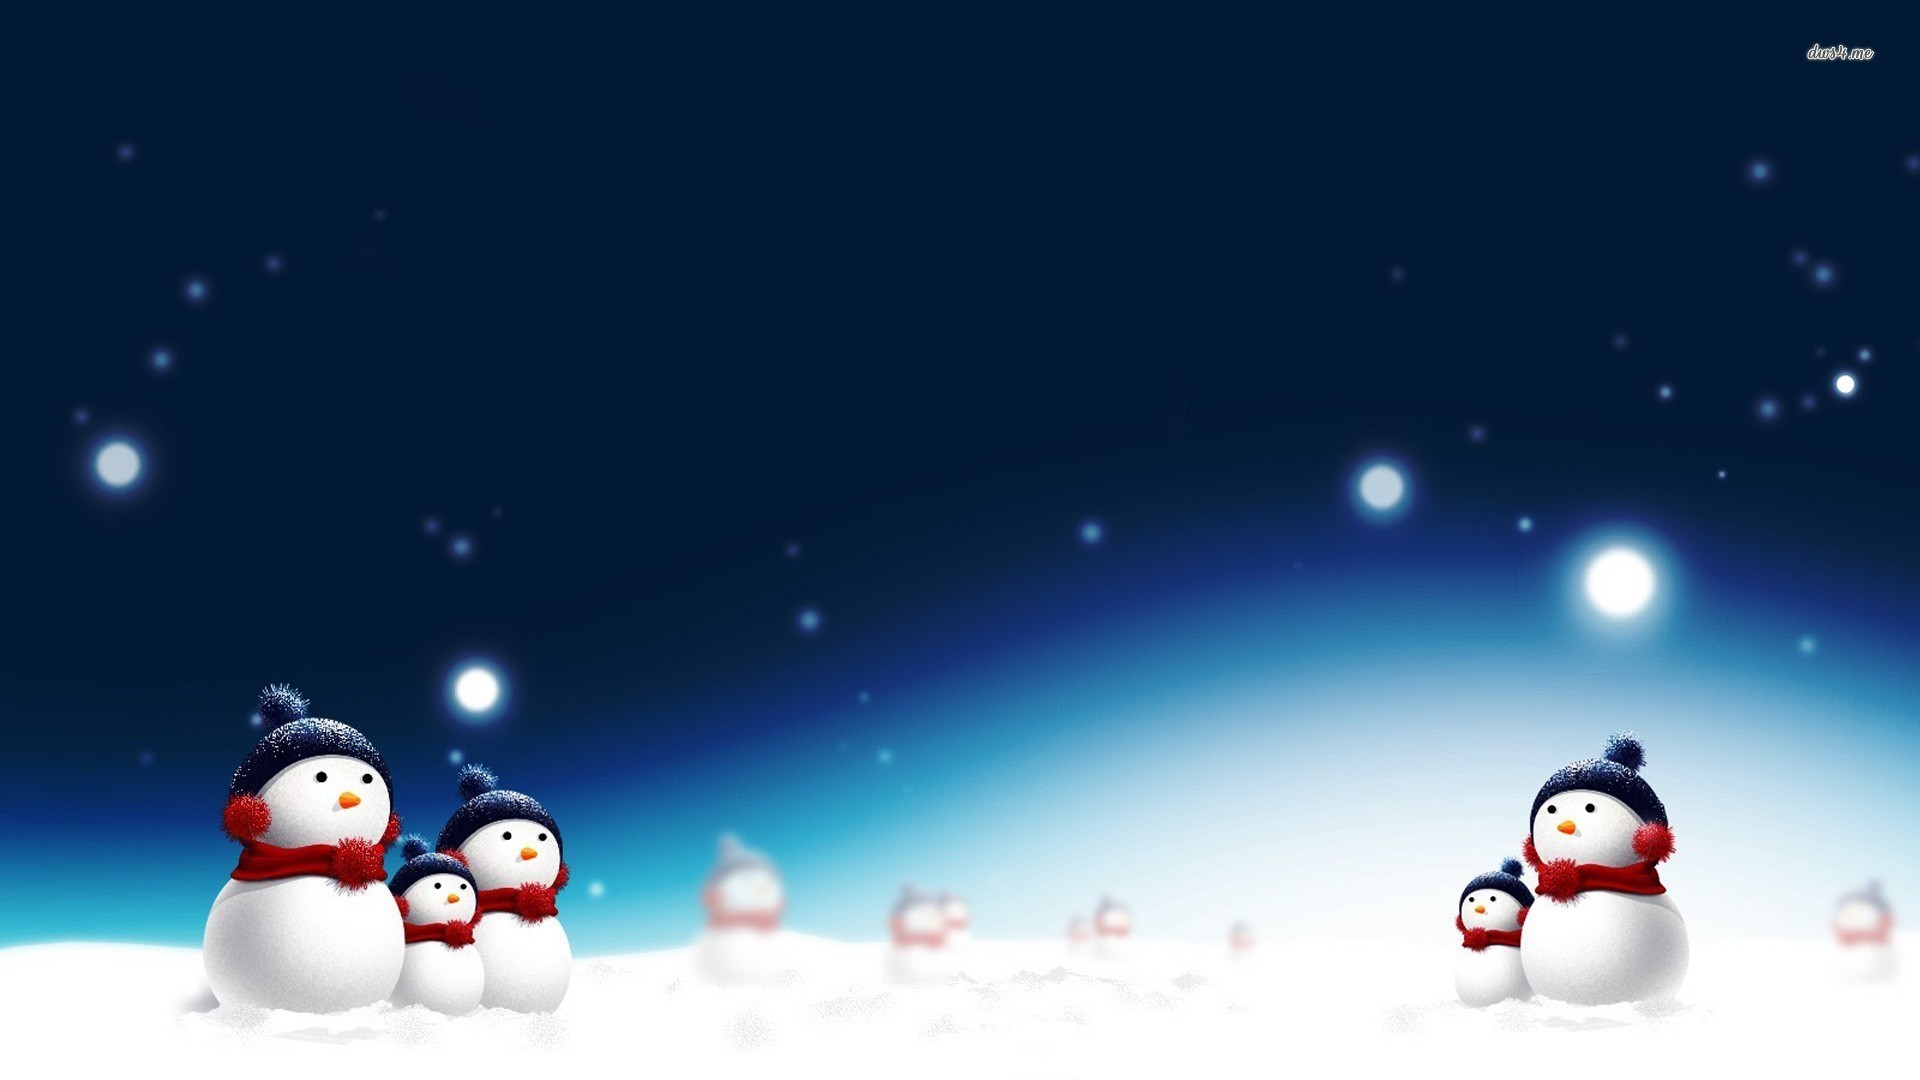 1920x1080 Free Holiday Wallpapers For Desktop